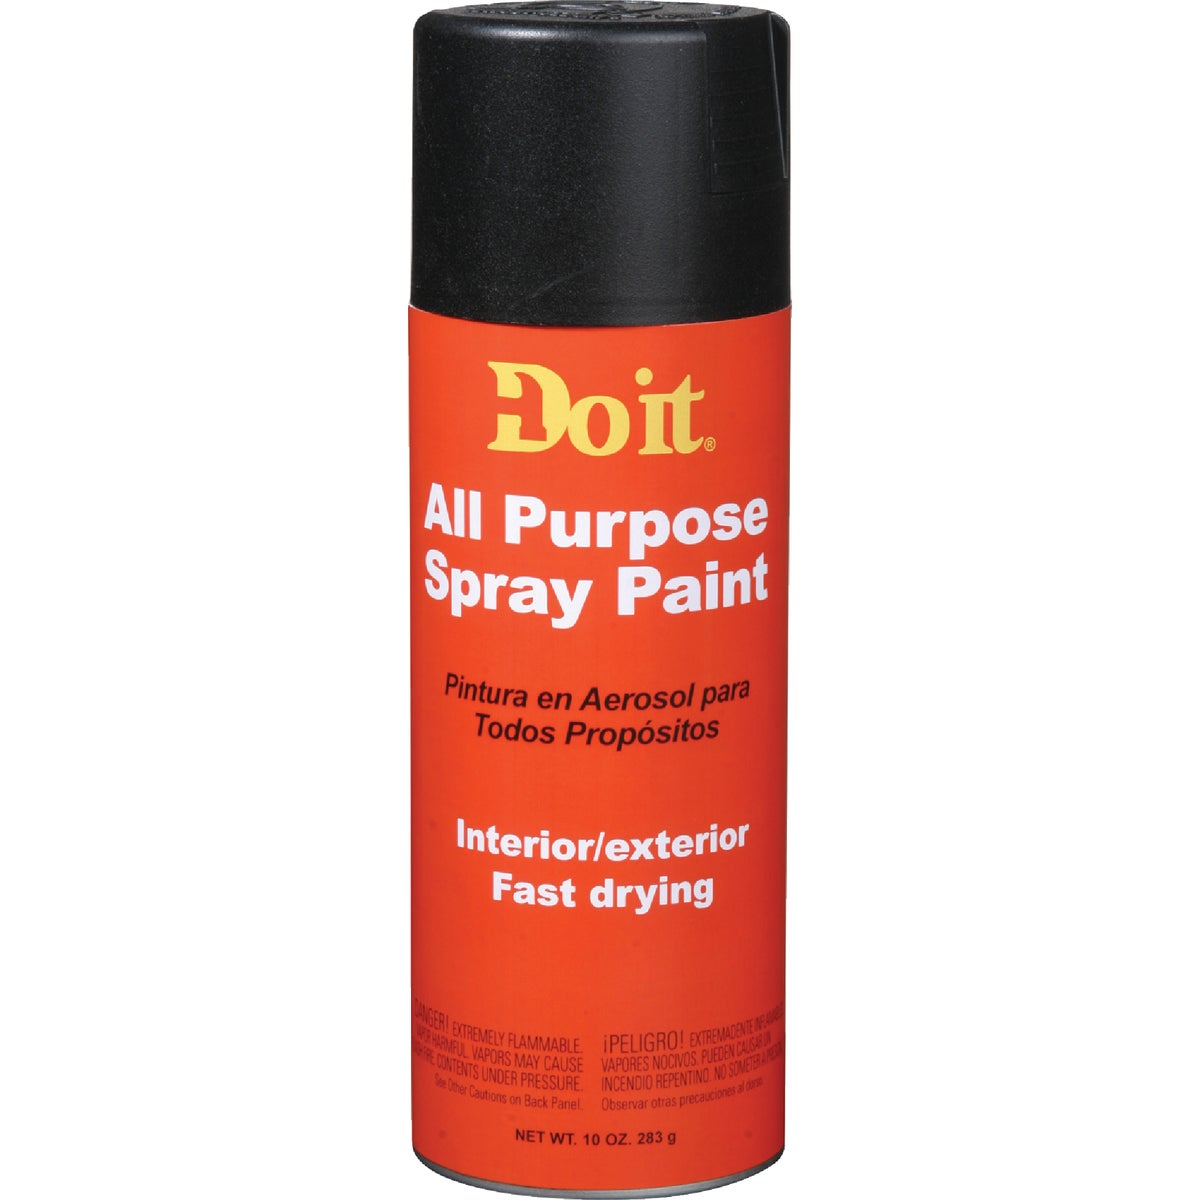 FLAT BLK A/P SPRAY PAINT - 9002 by Rustoleum